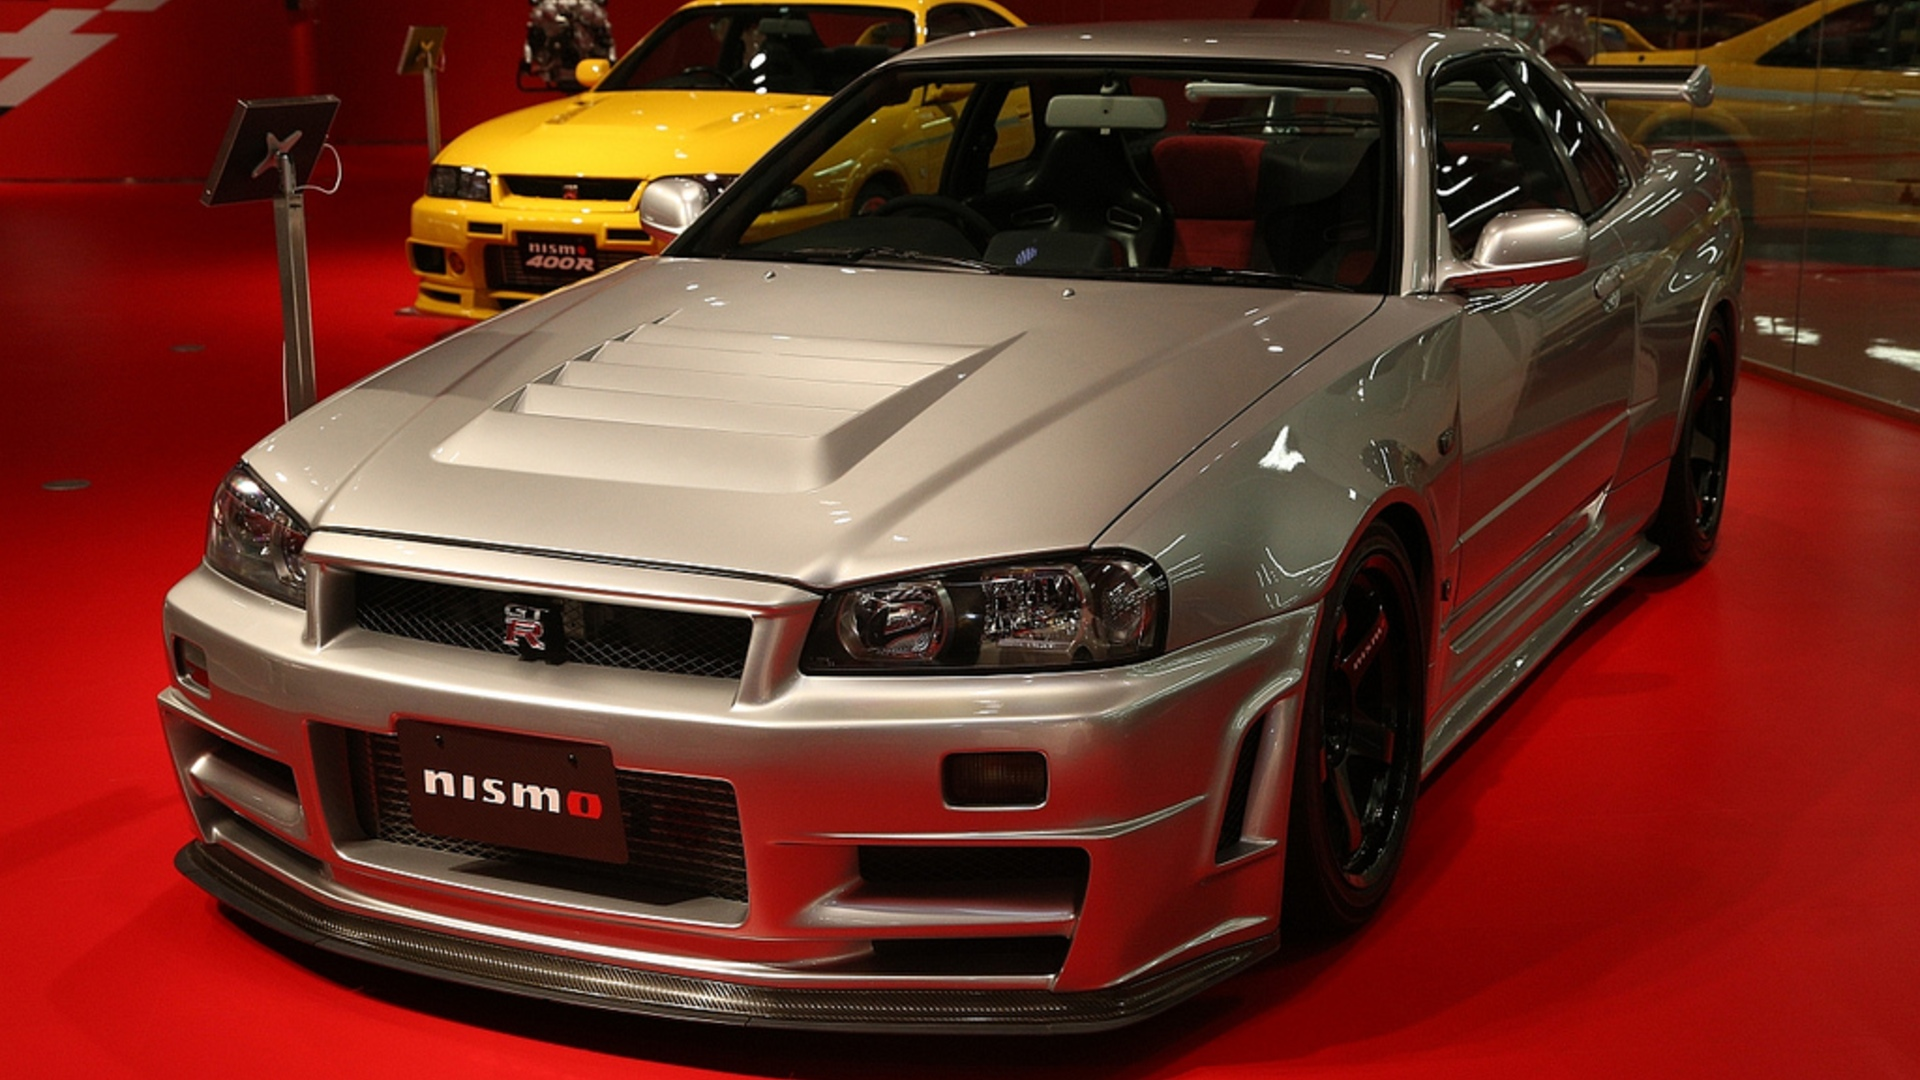 50 years of the Nissan Skyline GT-R